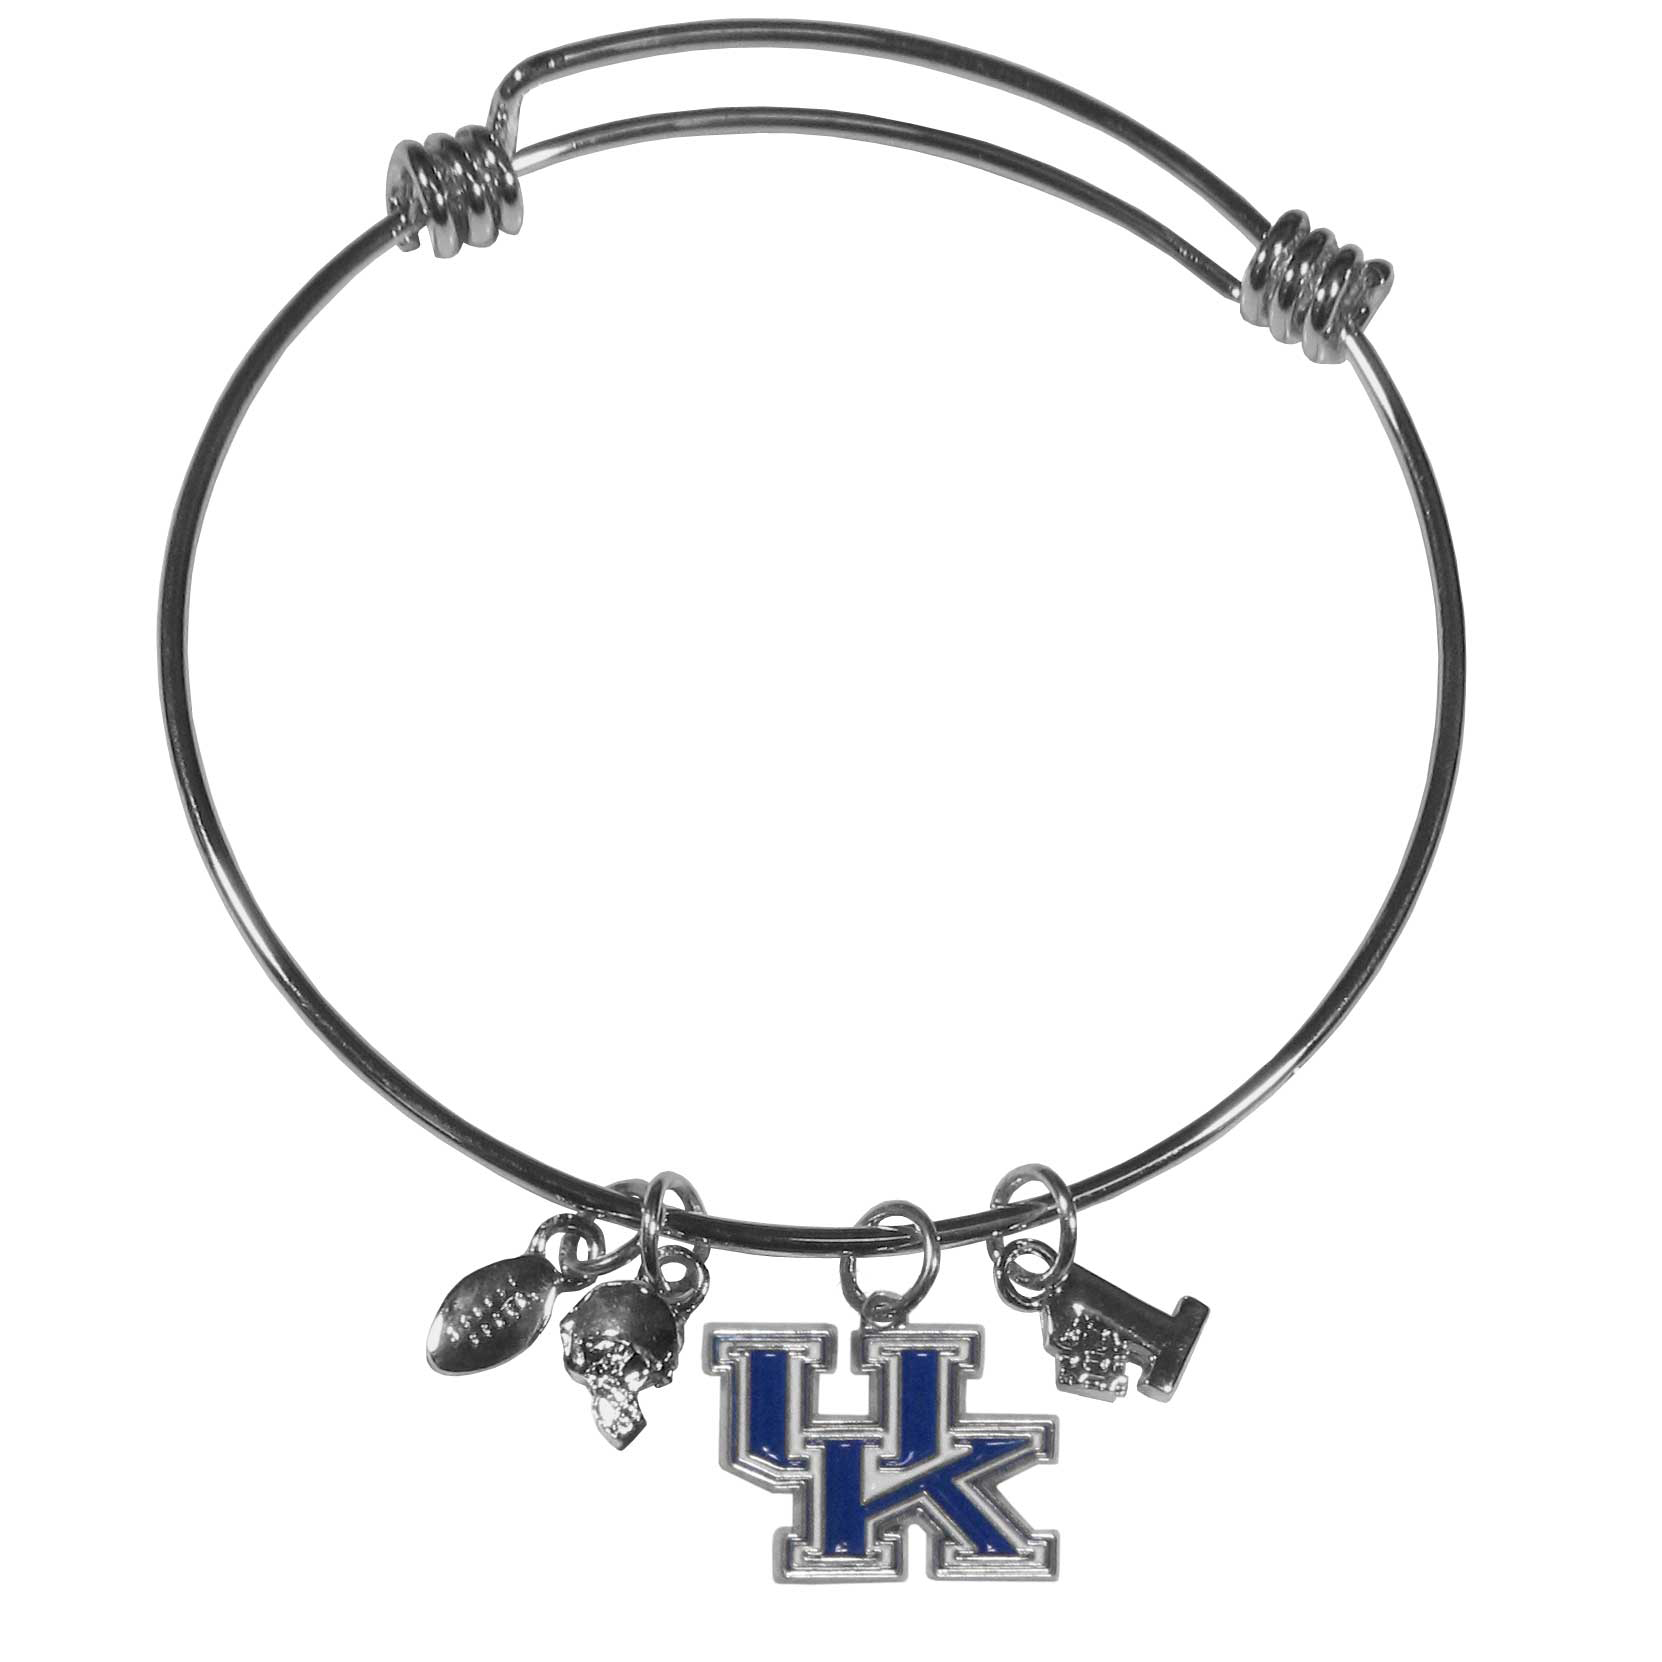 Kentucky Wildcats Charm Bangle Bracelet - Adjustable wire bracelets are all the rage and this Kentucky Wildcats bracelet matches the popular trend with your beloved team. The bracelet features 4 charms in total, each feature exceptional detail and the team charm has enameled team colors.